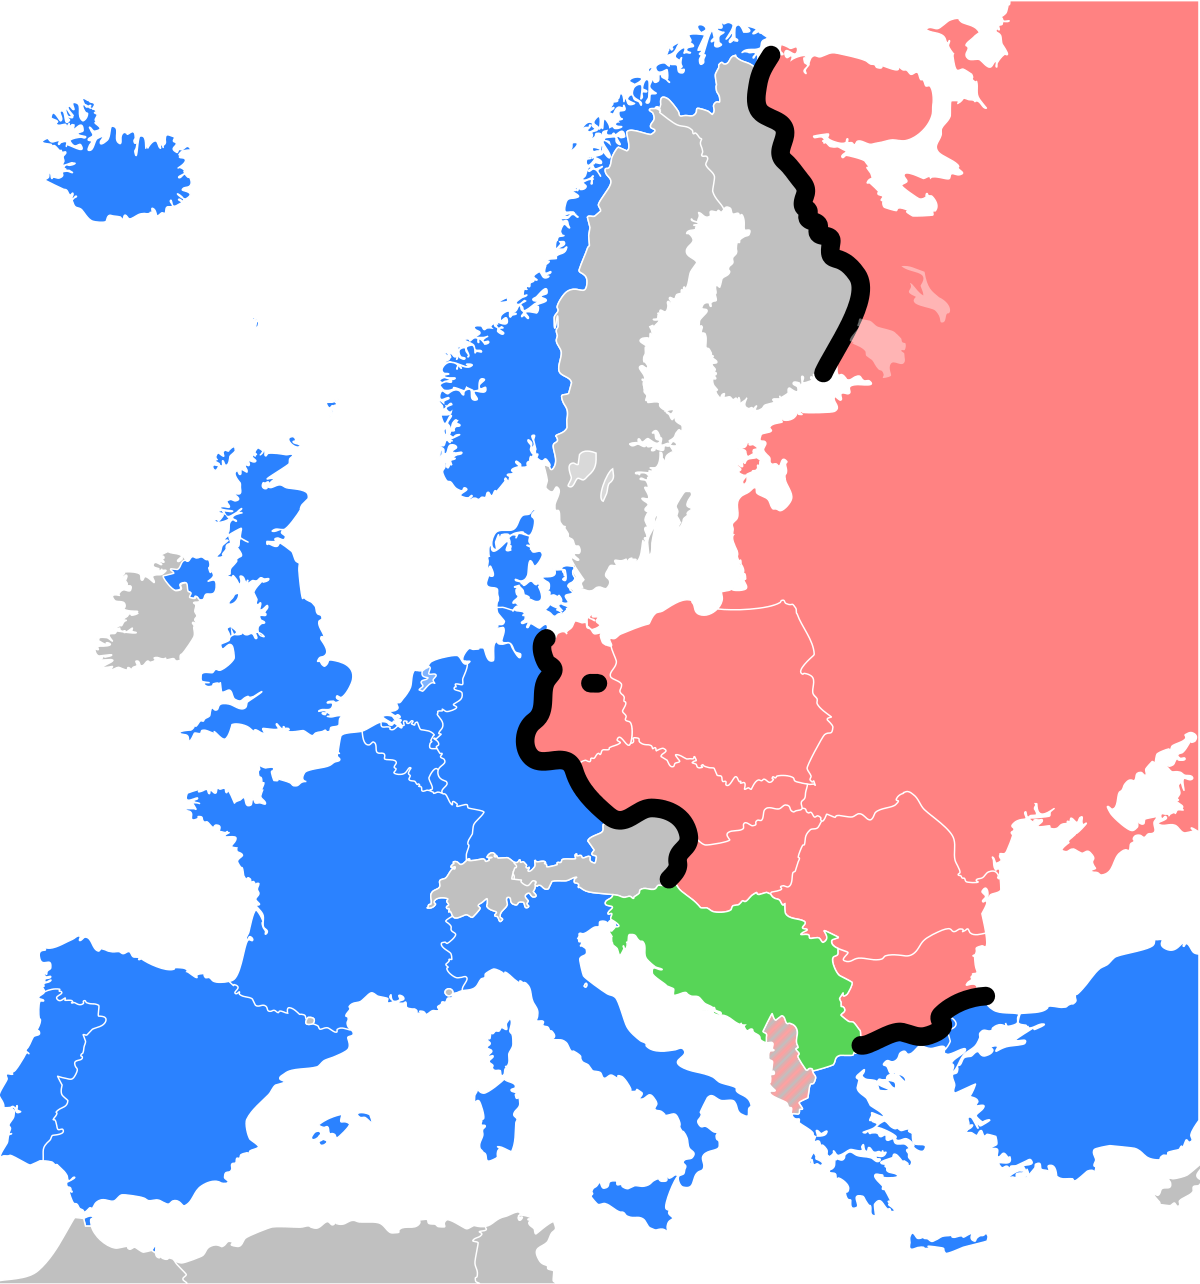 Cold clipart cold word. Iron curtain wikipedia